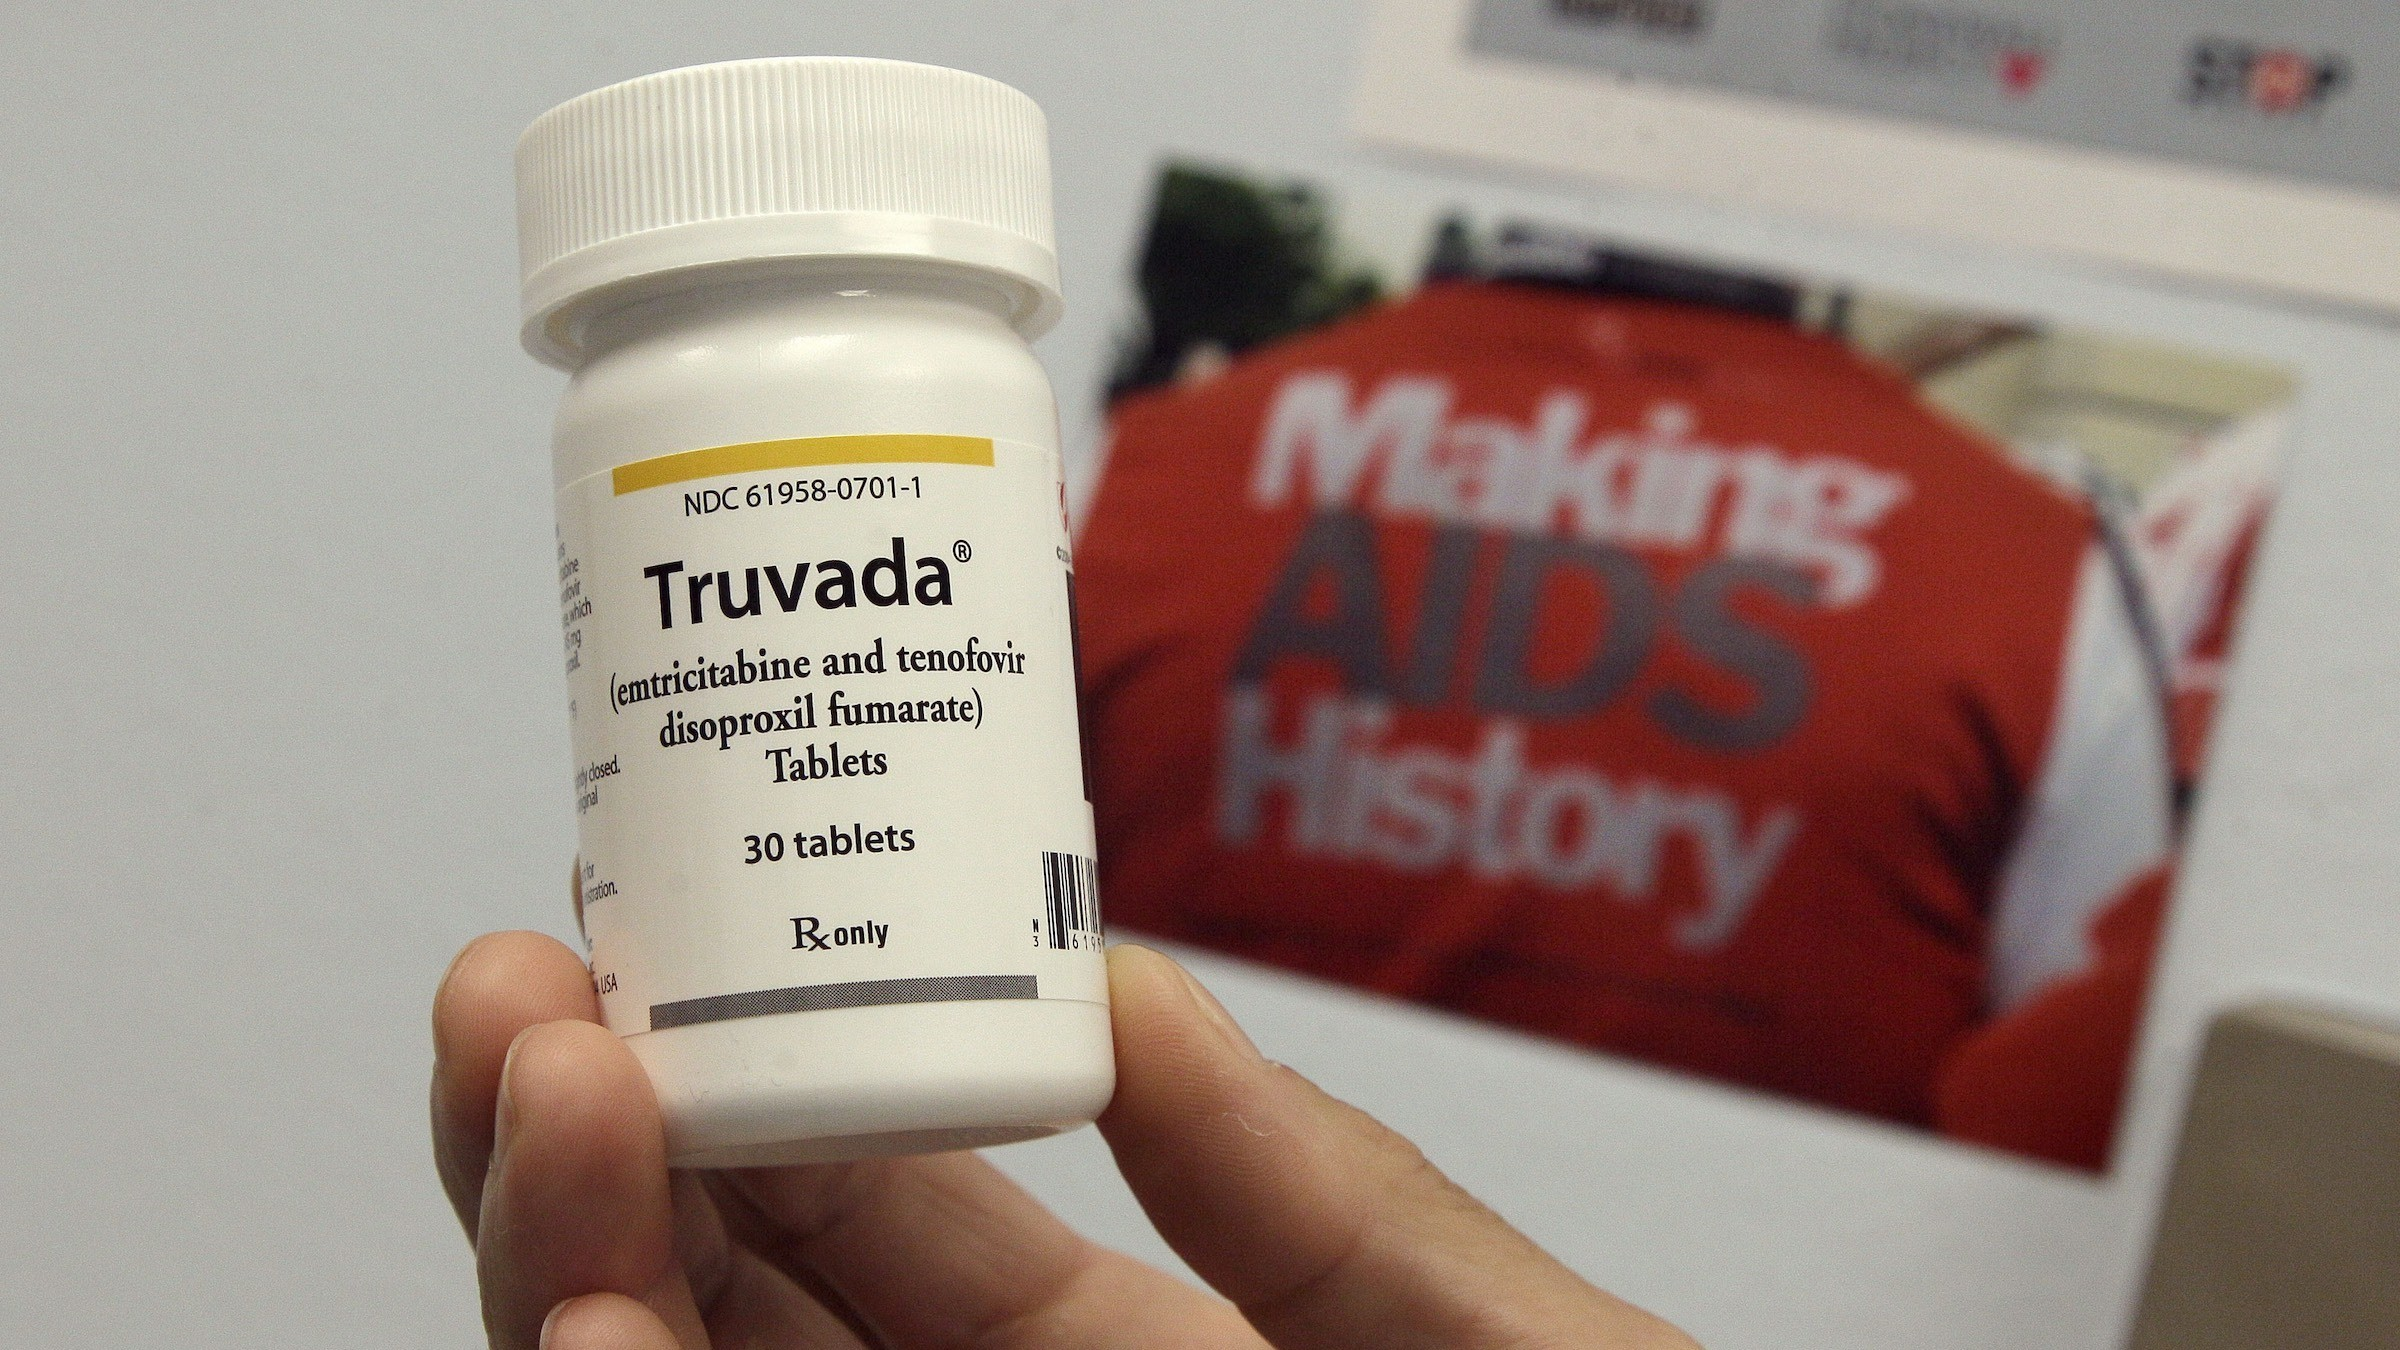 Canada Approves Drug That Stops HIV Transmission, but It's Still Really Expensive